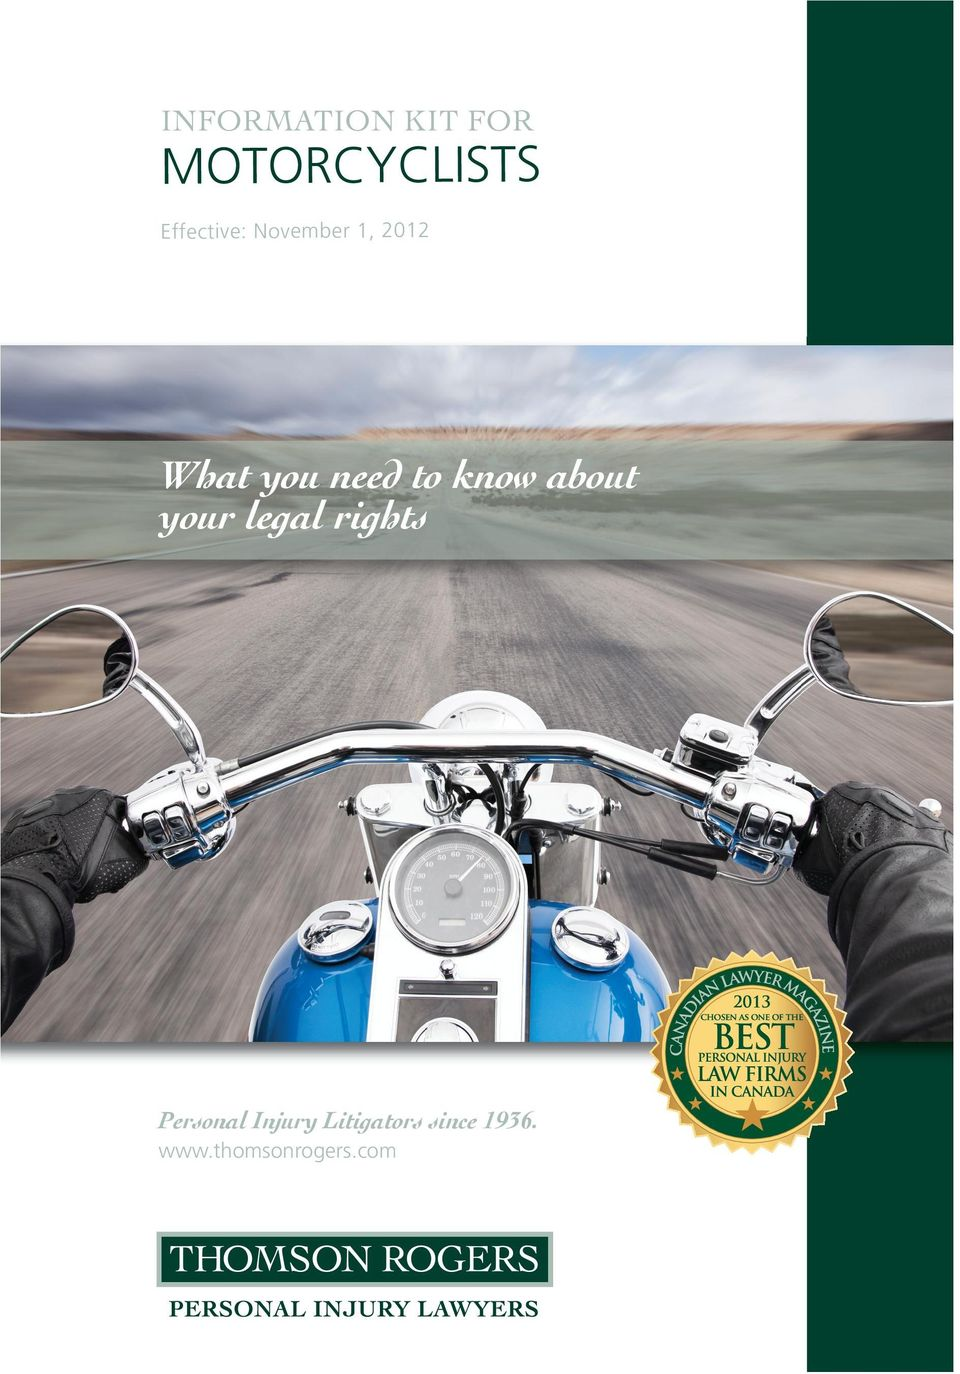 MOTORCYCLISTS Effective: November 1, 2012 What you need